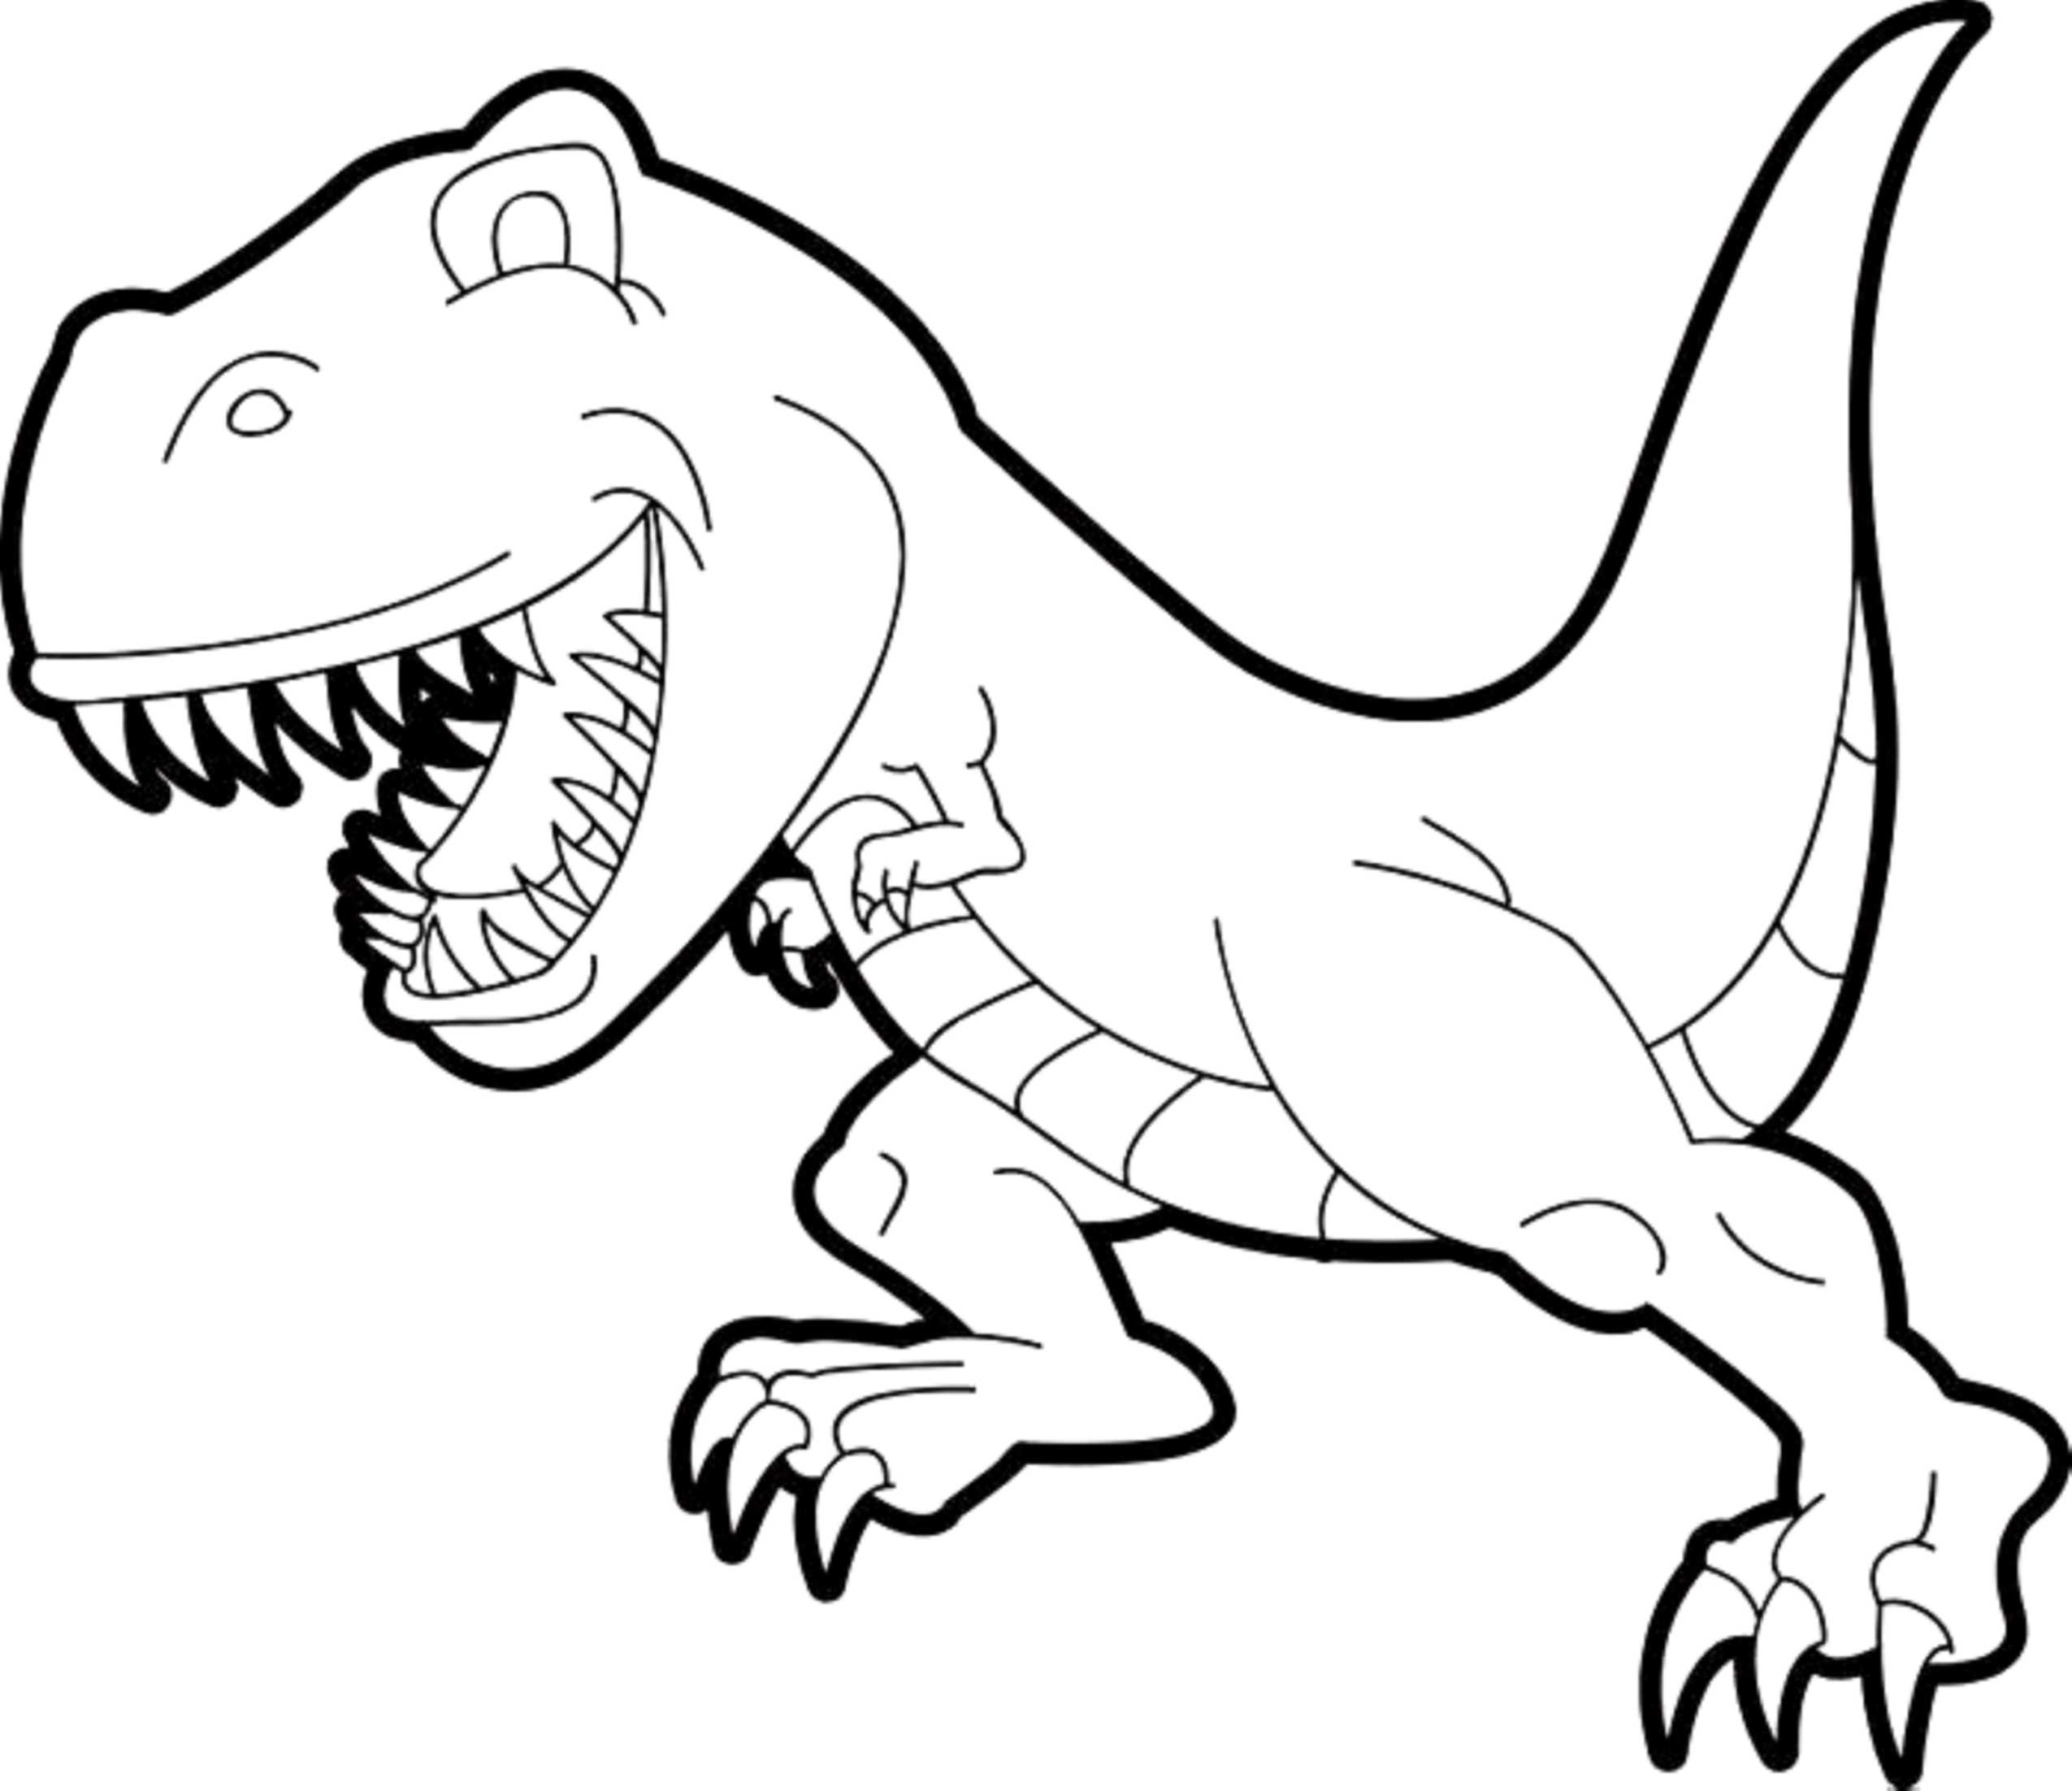 kids t rex coloring page coloring pages and images 26 t rex coloring images pictures page t rex kids coloring